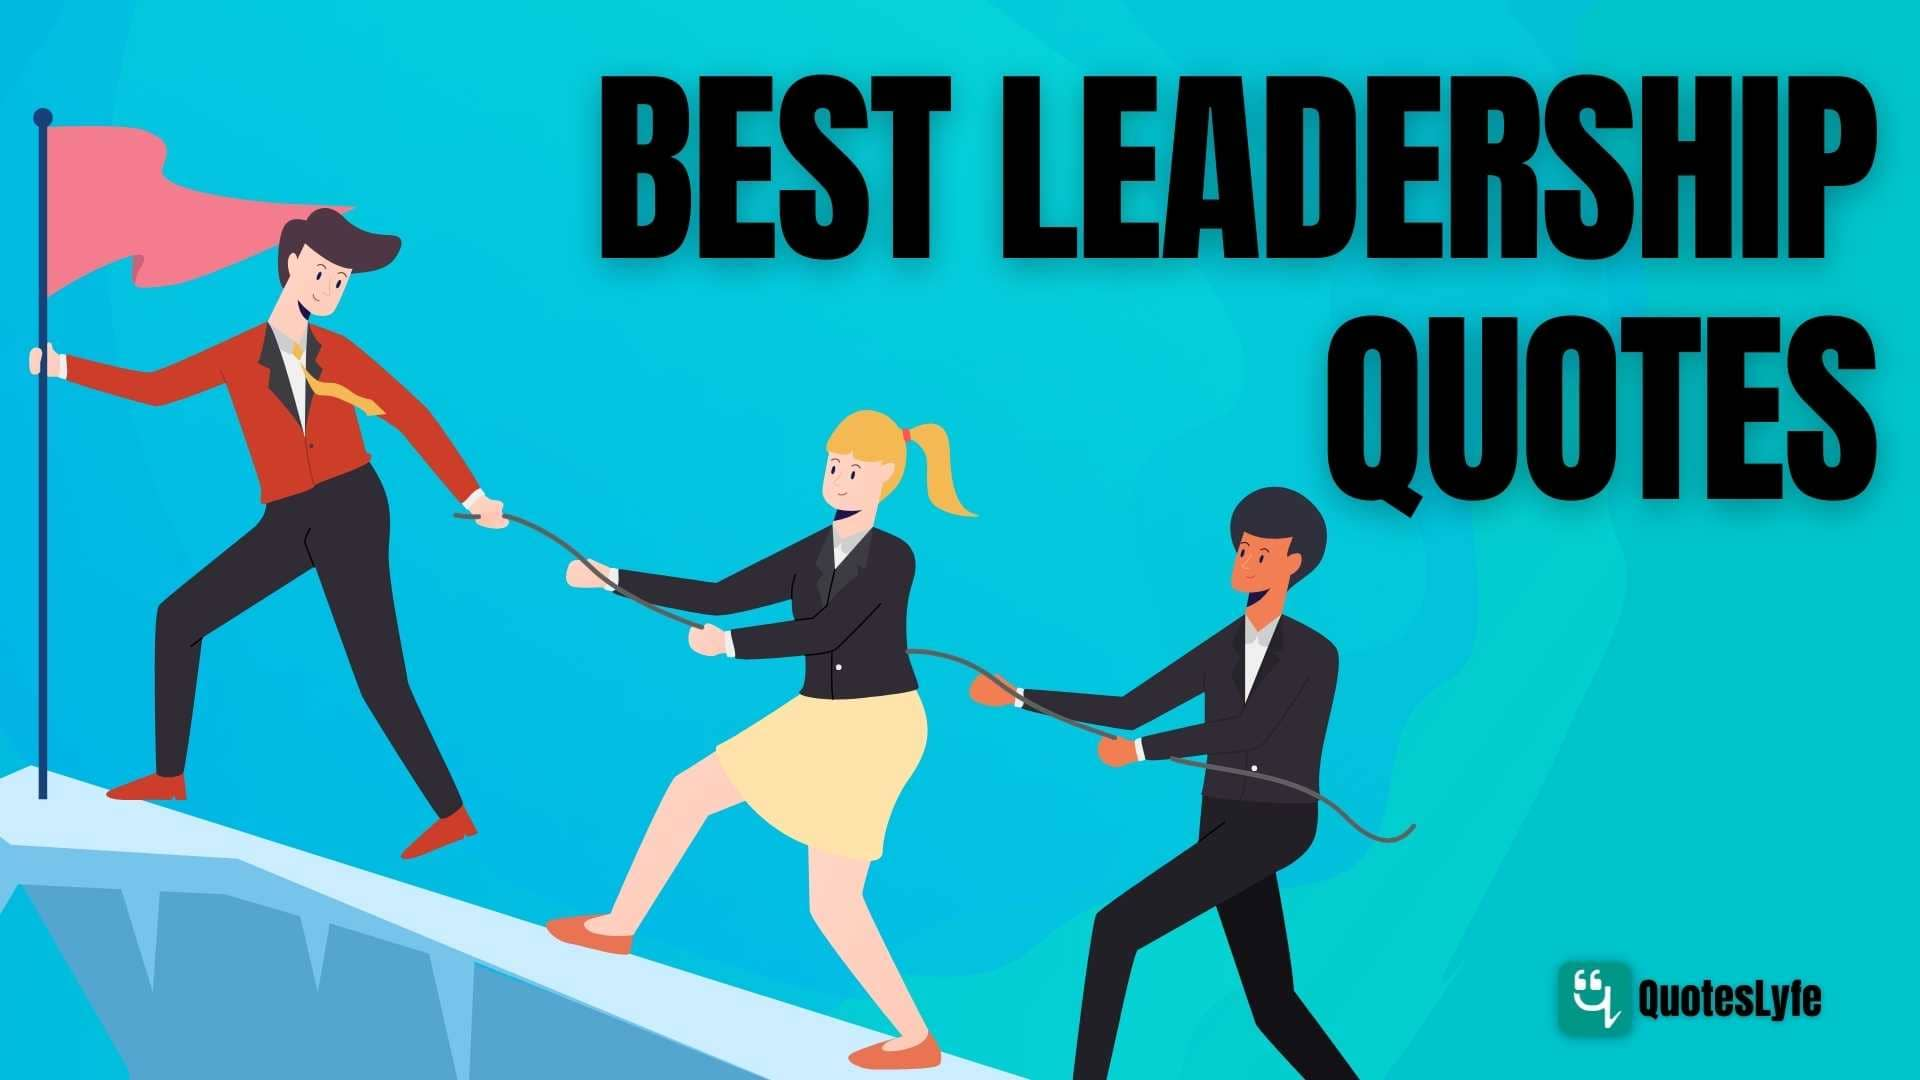 Best Leadership Quotes to Bring Out the Leader Within You